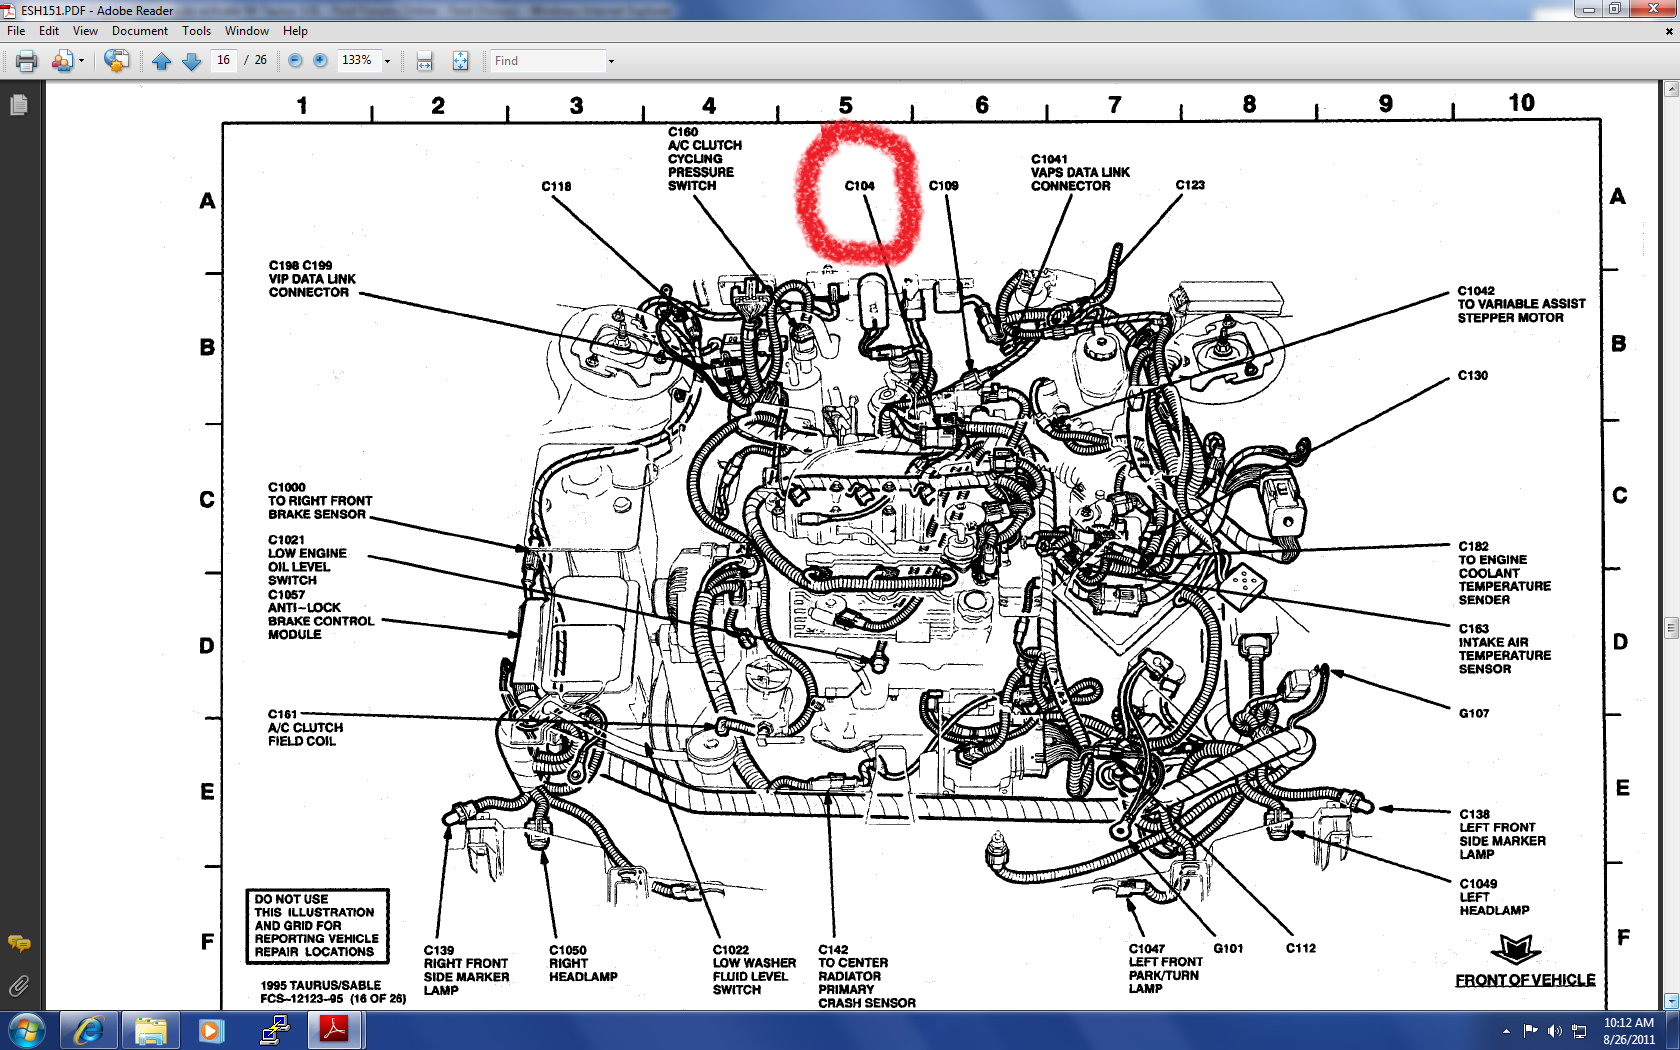 download] ford taurus engine cooling diagram hd quality -  rulesentdiagram.ahimsa-fund.fr  rulesentdiagram ahimsa-fund fr - ahimsa fund